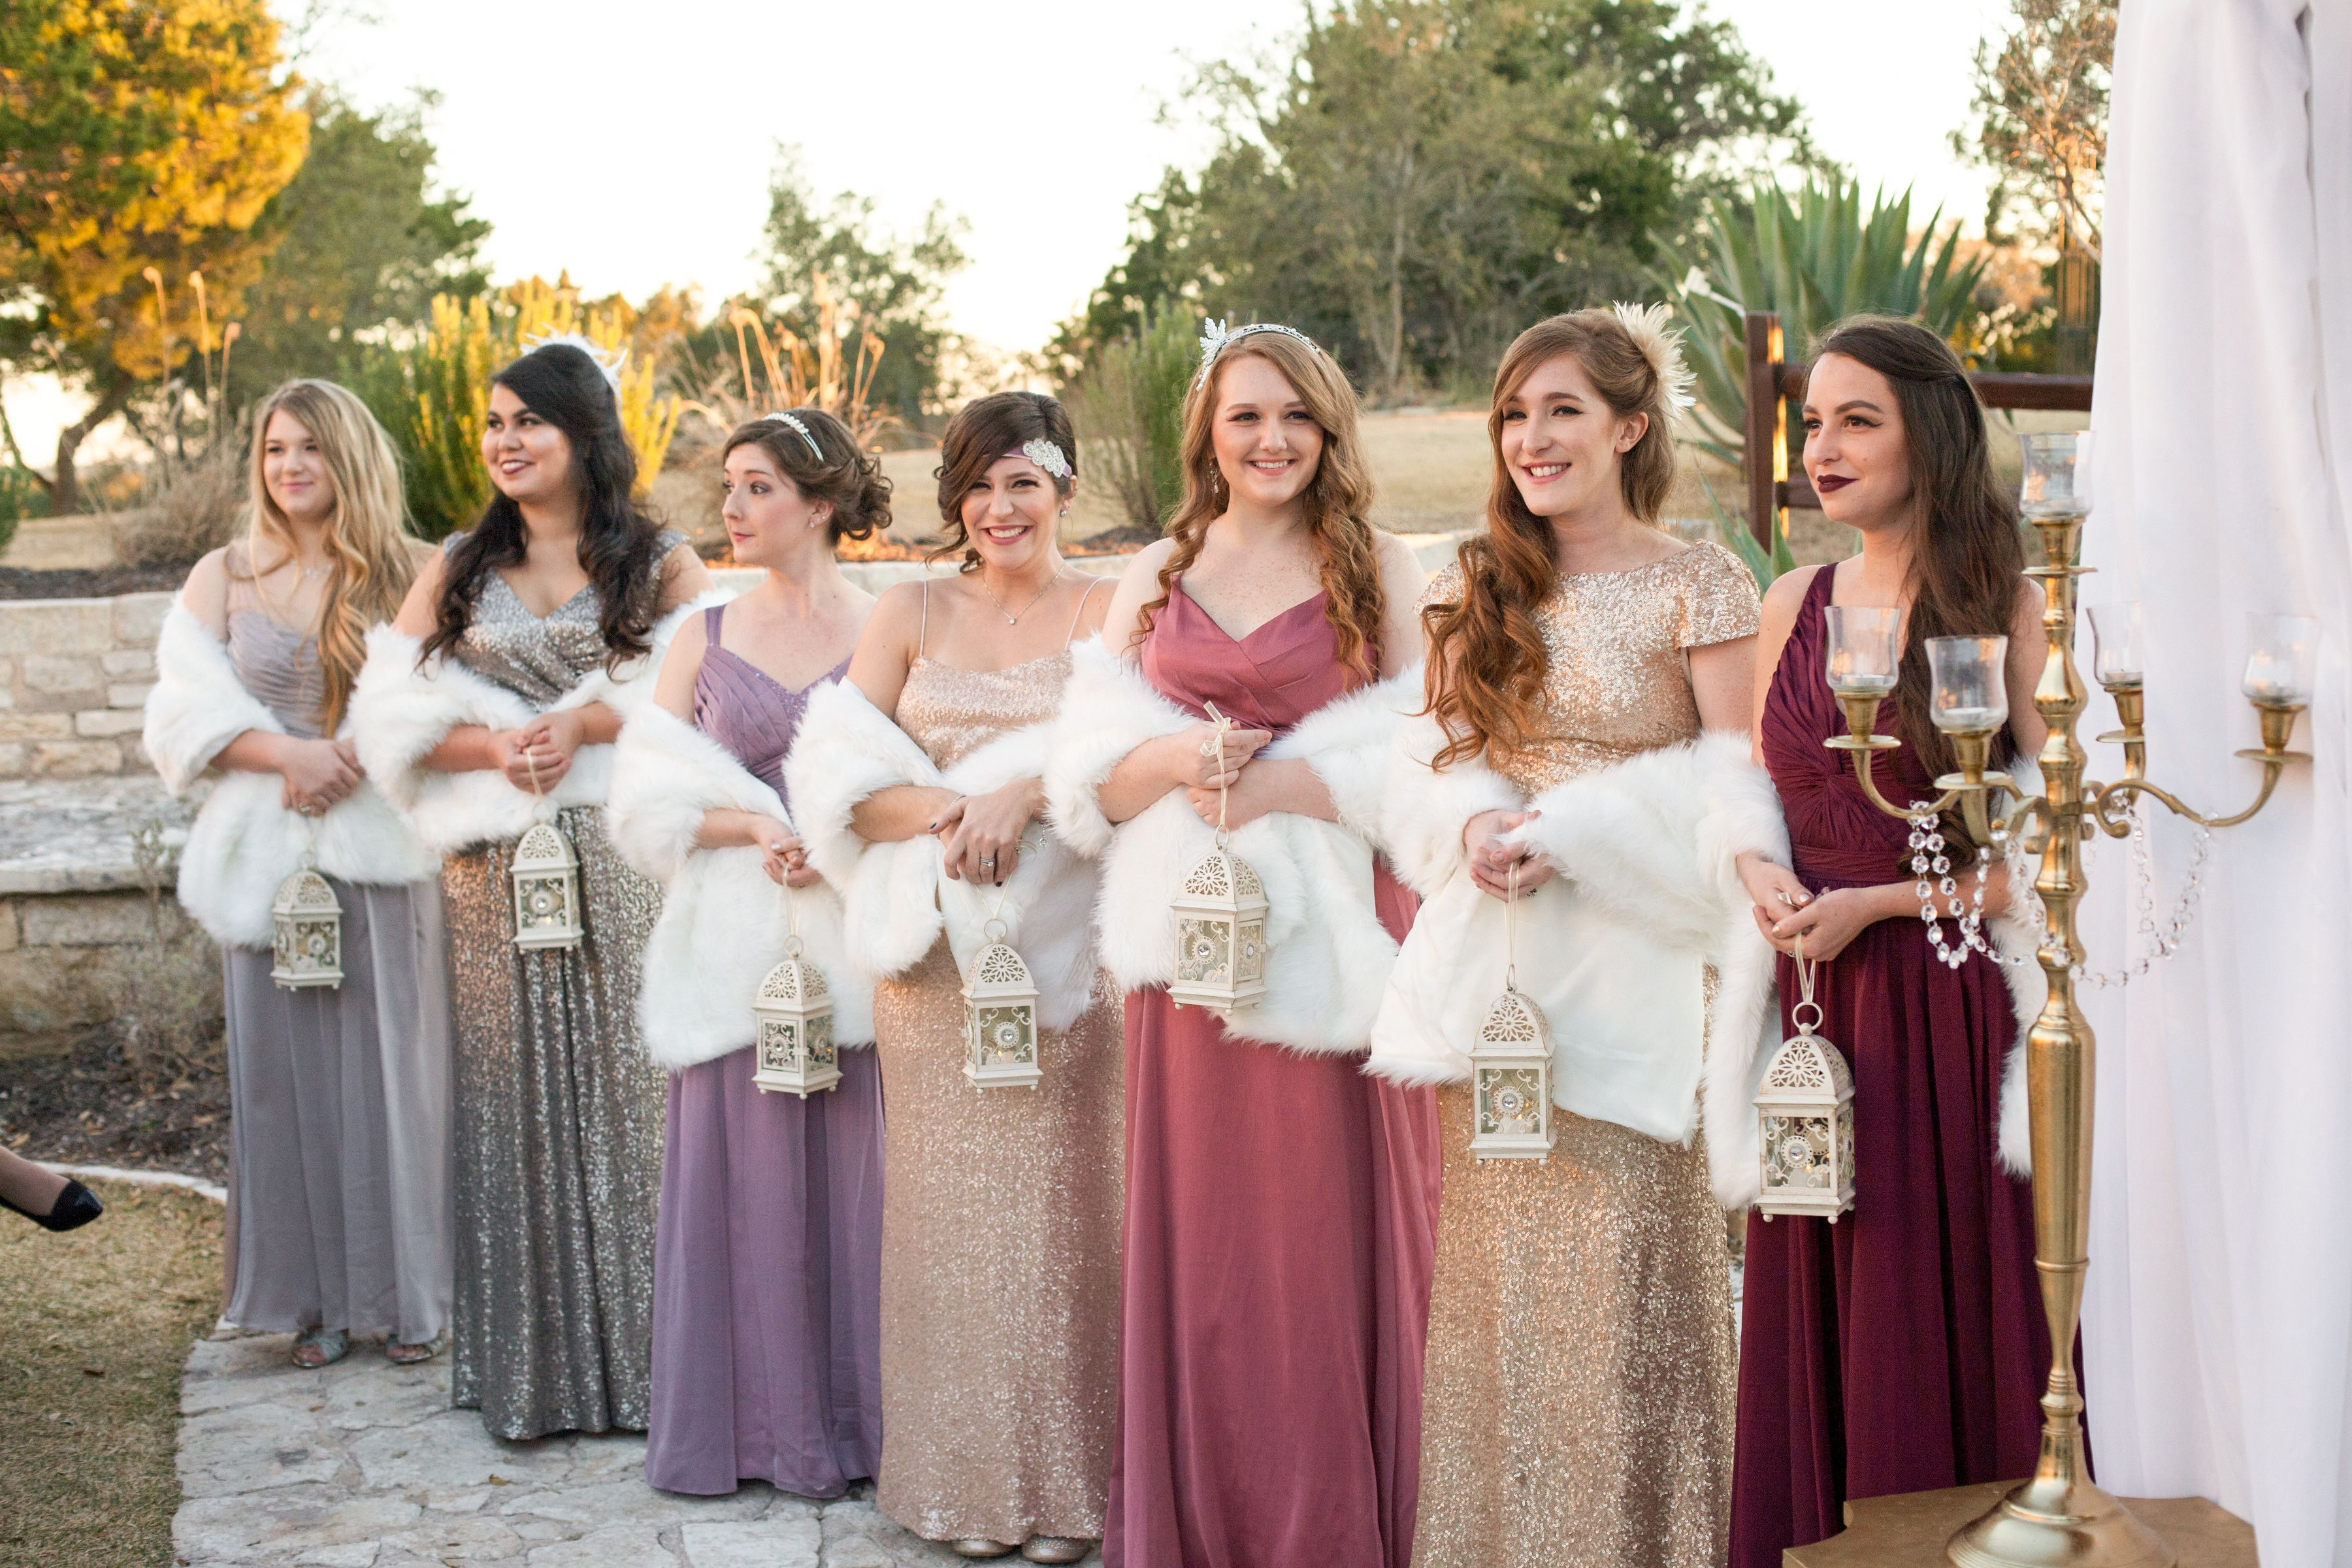 Sequin metallic mismatched old hollywood bridesmaids dresses bridesmaids idea for vintage wedding bridesmaids carried vintage lanterns instead of bouquets george street photo video ombrellifo Choice Image